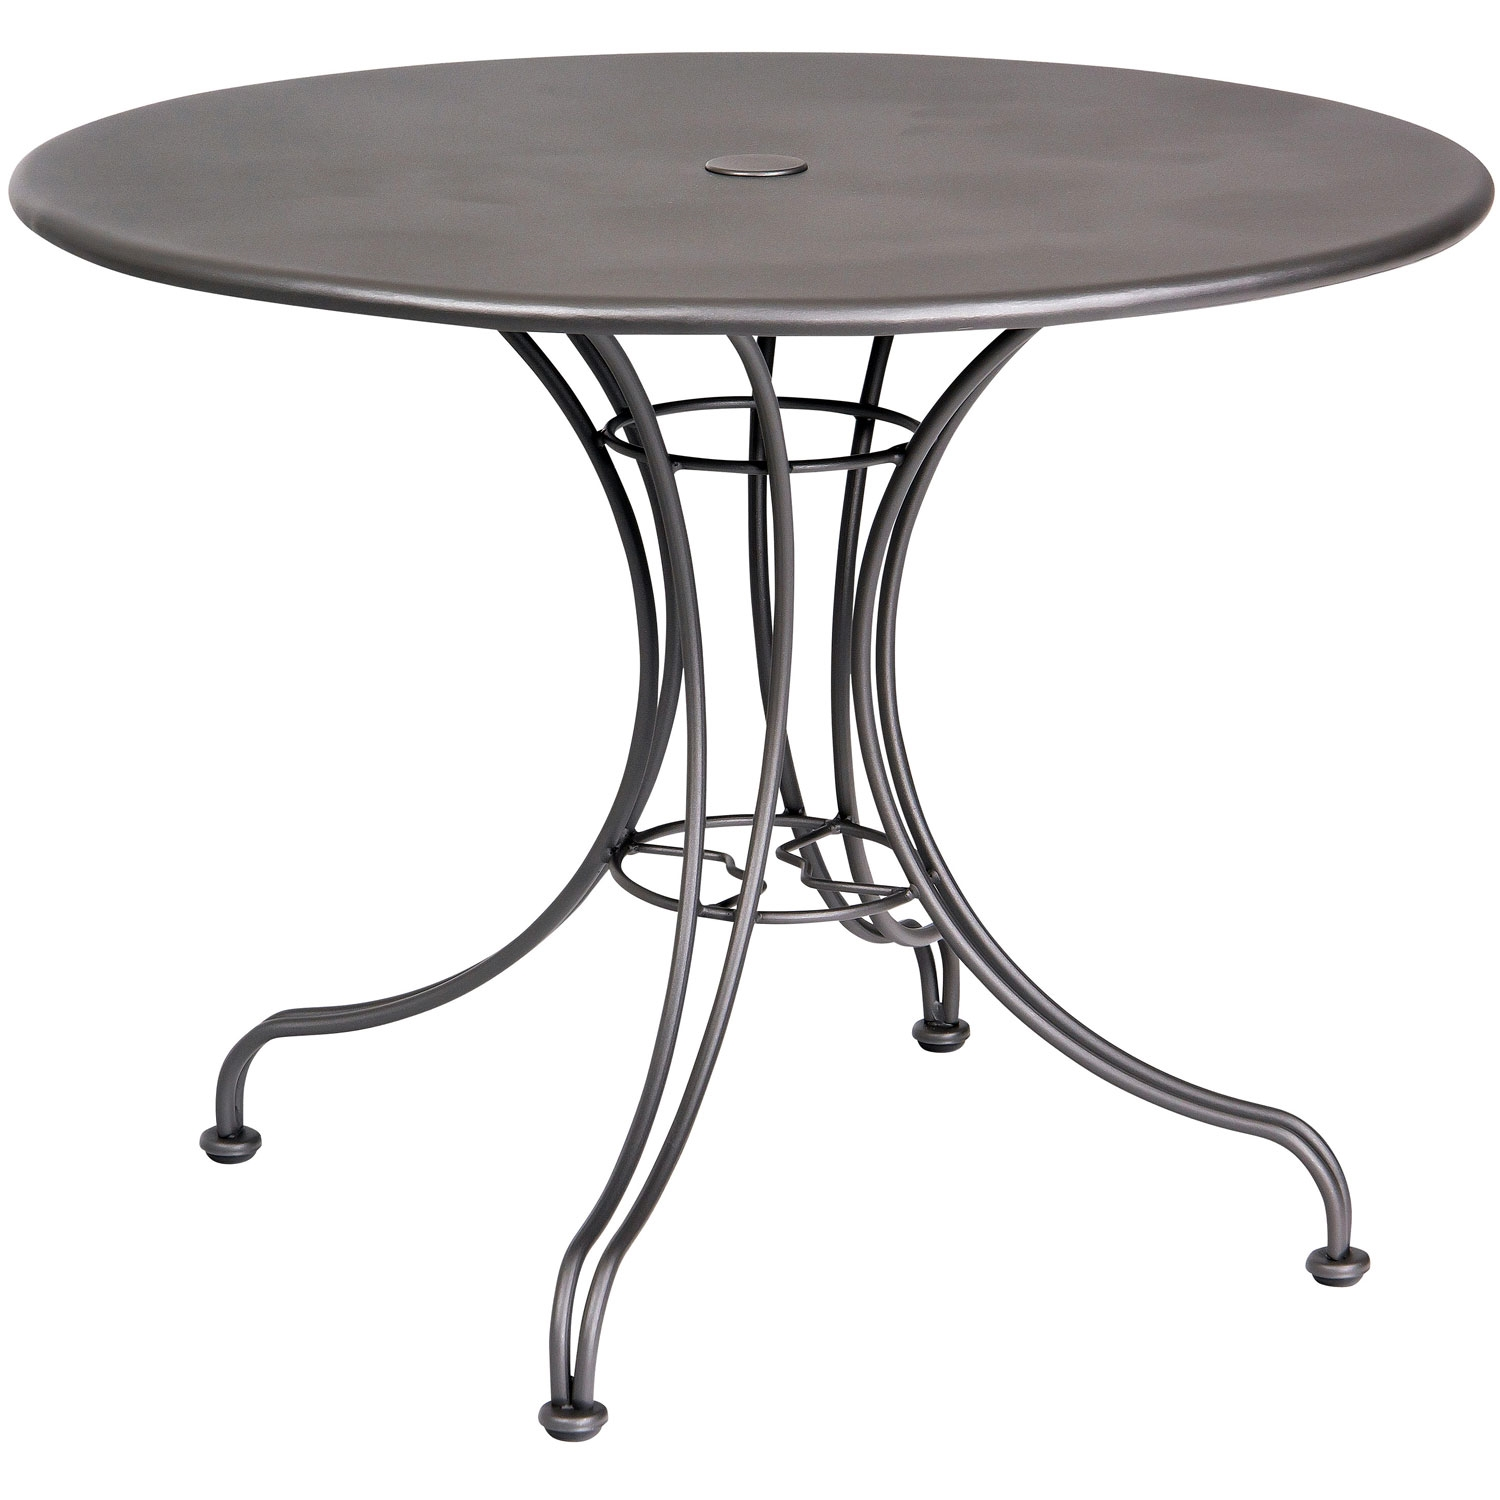 Buy The Solid Iron 36 Round Table For Your Outdoor Living Area Online